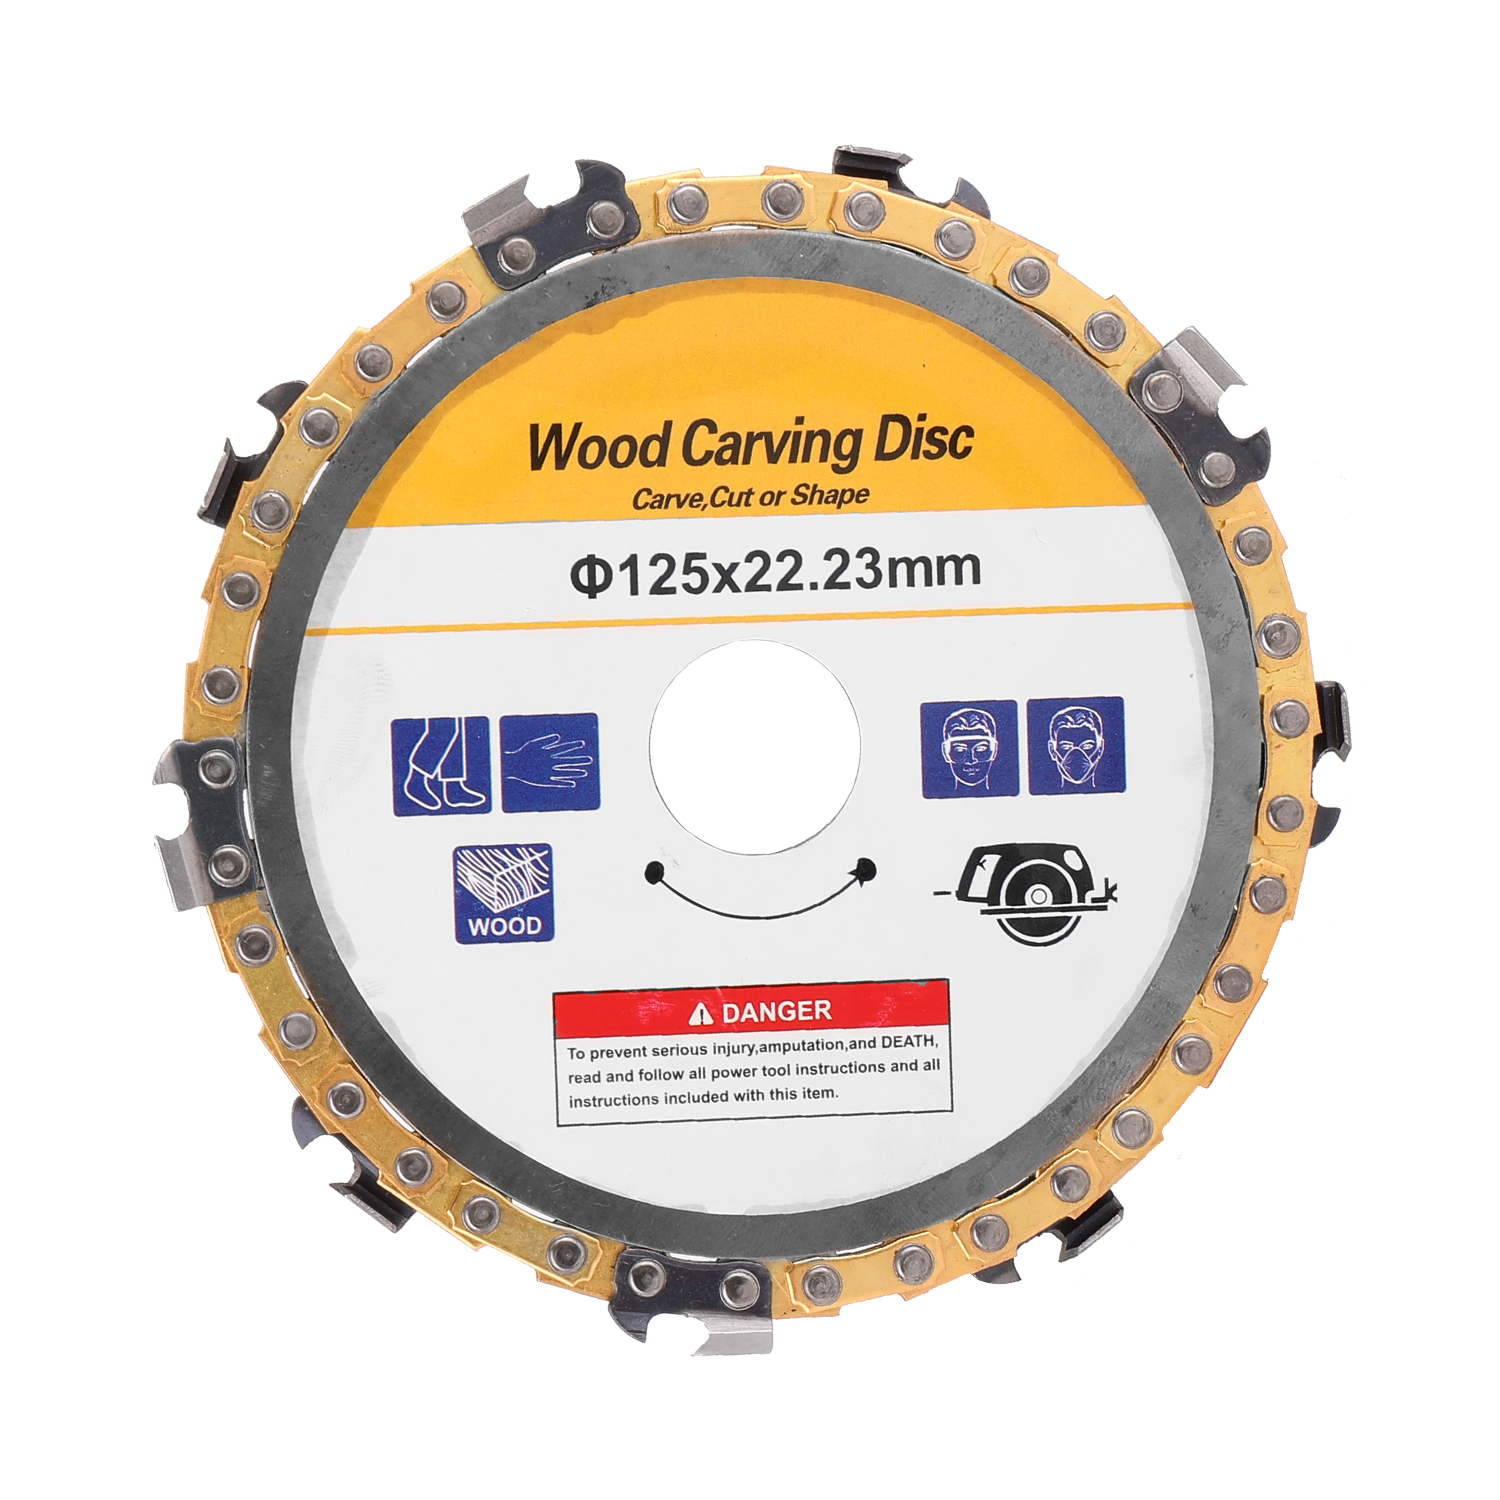 Woodworking Chain Grinder Chain Saws Disc Wood Carving Disc Chain Plate Tool Wood Disc Saw Blades Multitool Blades Cutting Disc